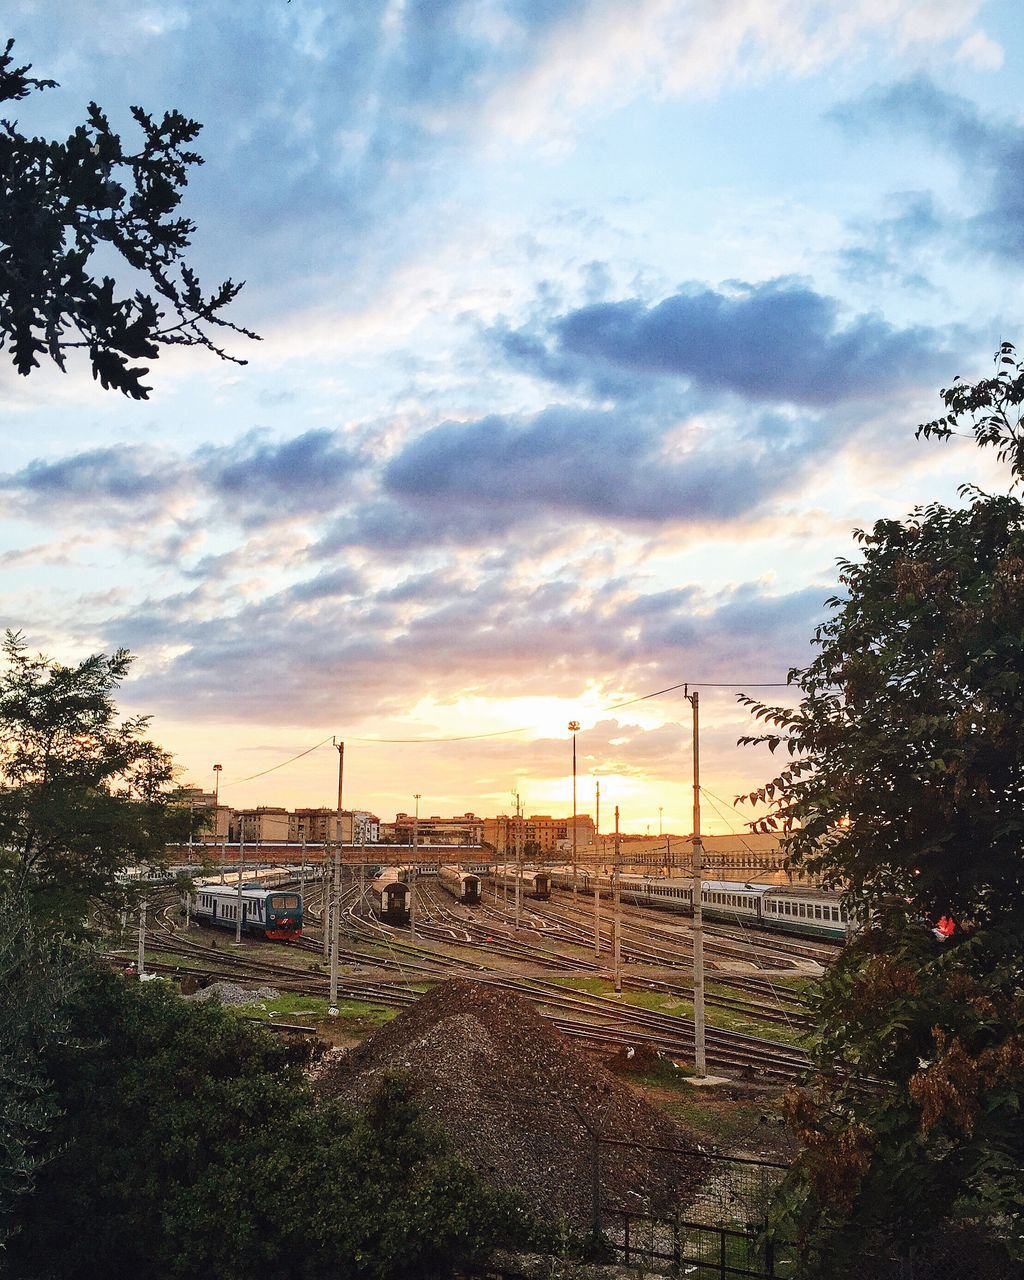 Trains At Shunting Yard Against Sky During Sunset